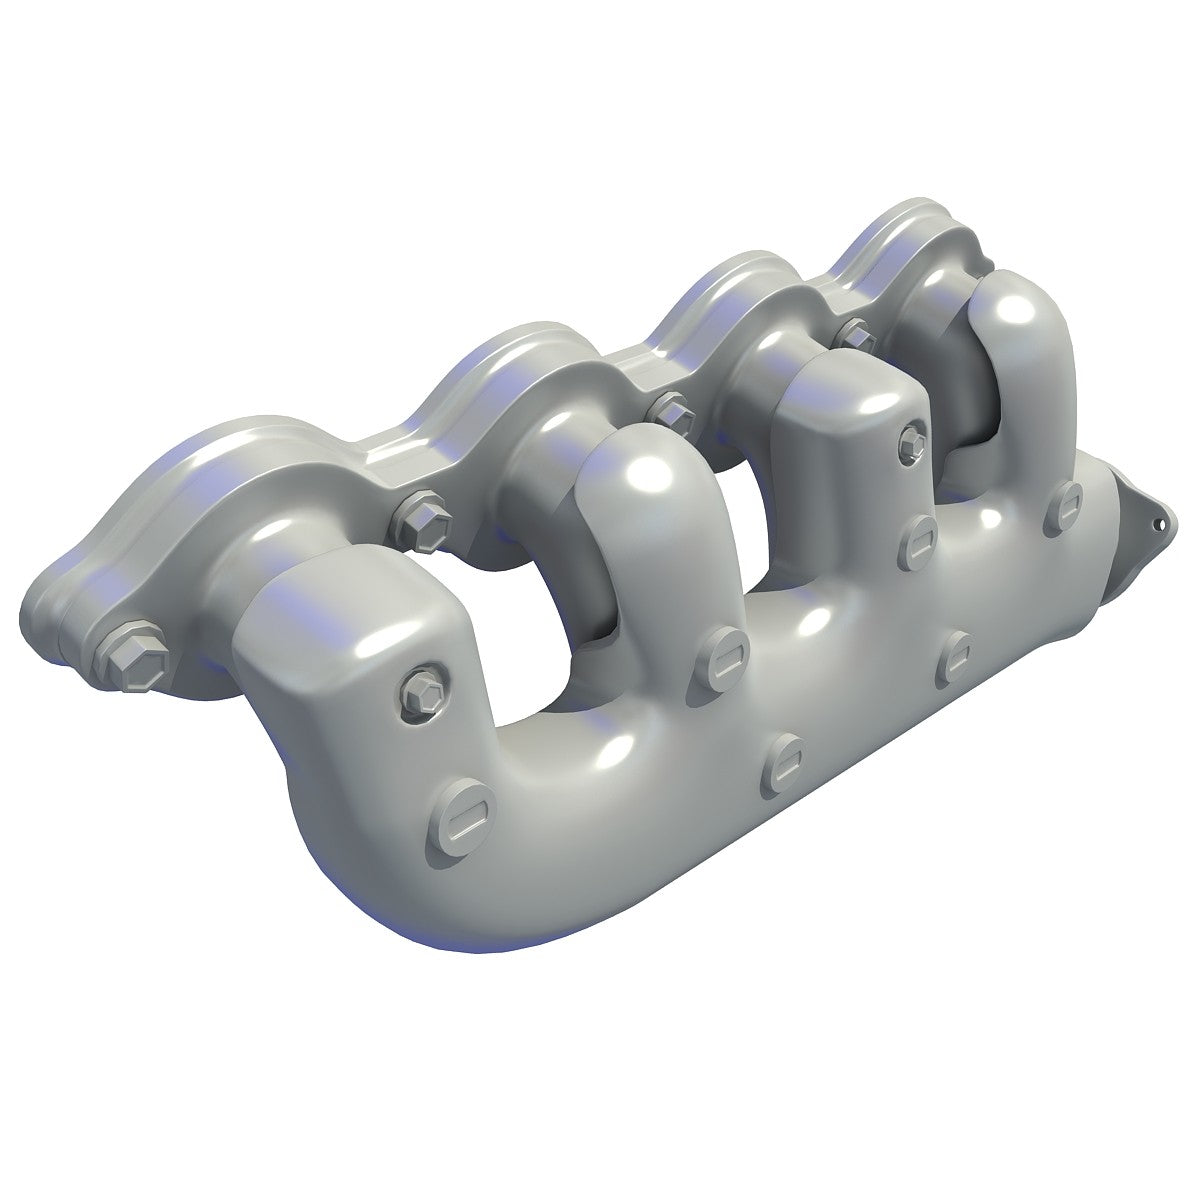 Exhaust Manifolds 3D Model